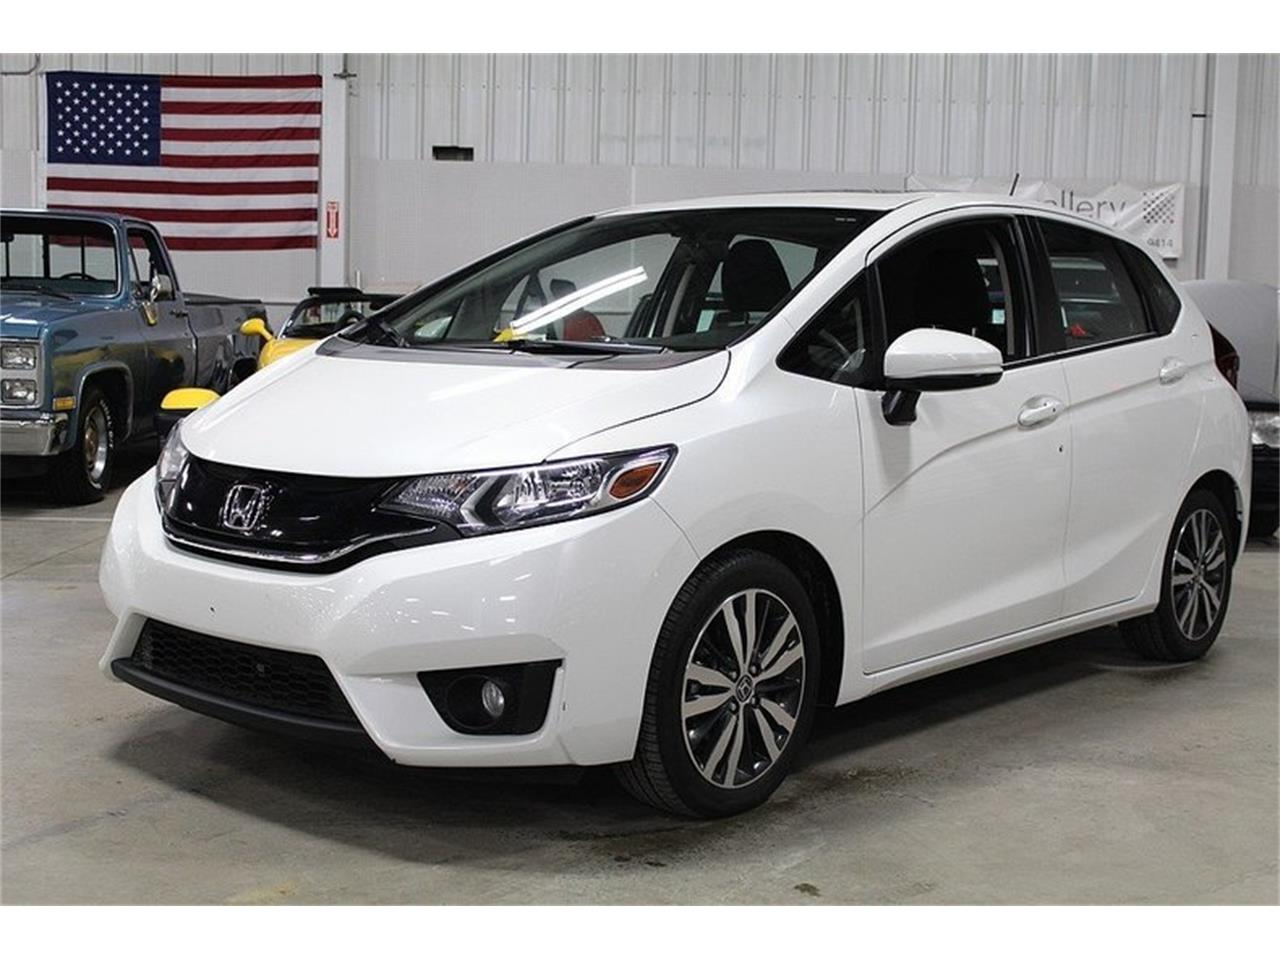 Large Picture of '15 Fit - $13,900.00 - MO4N